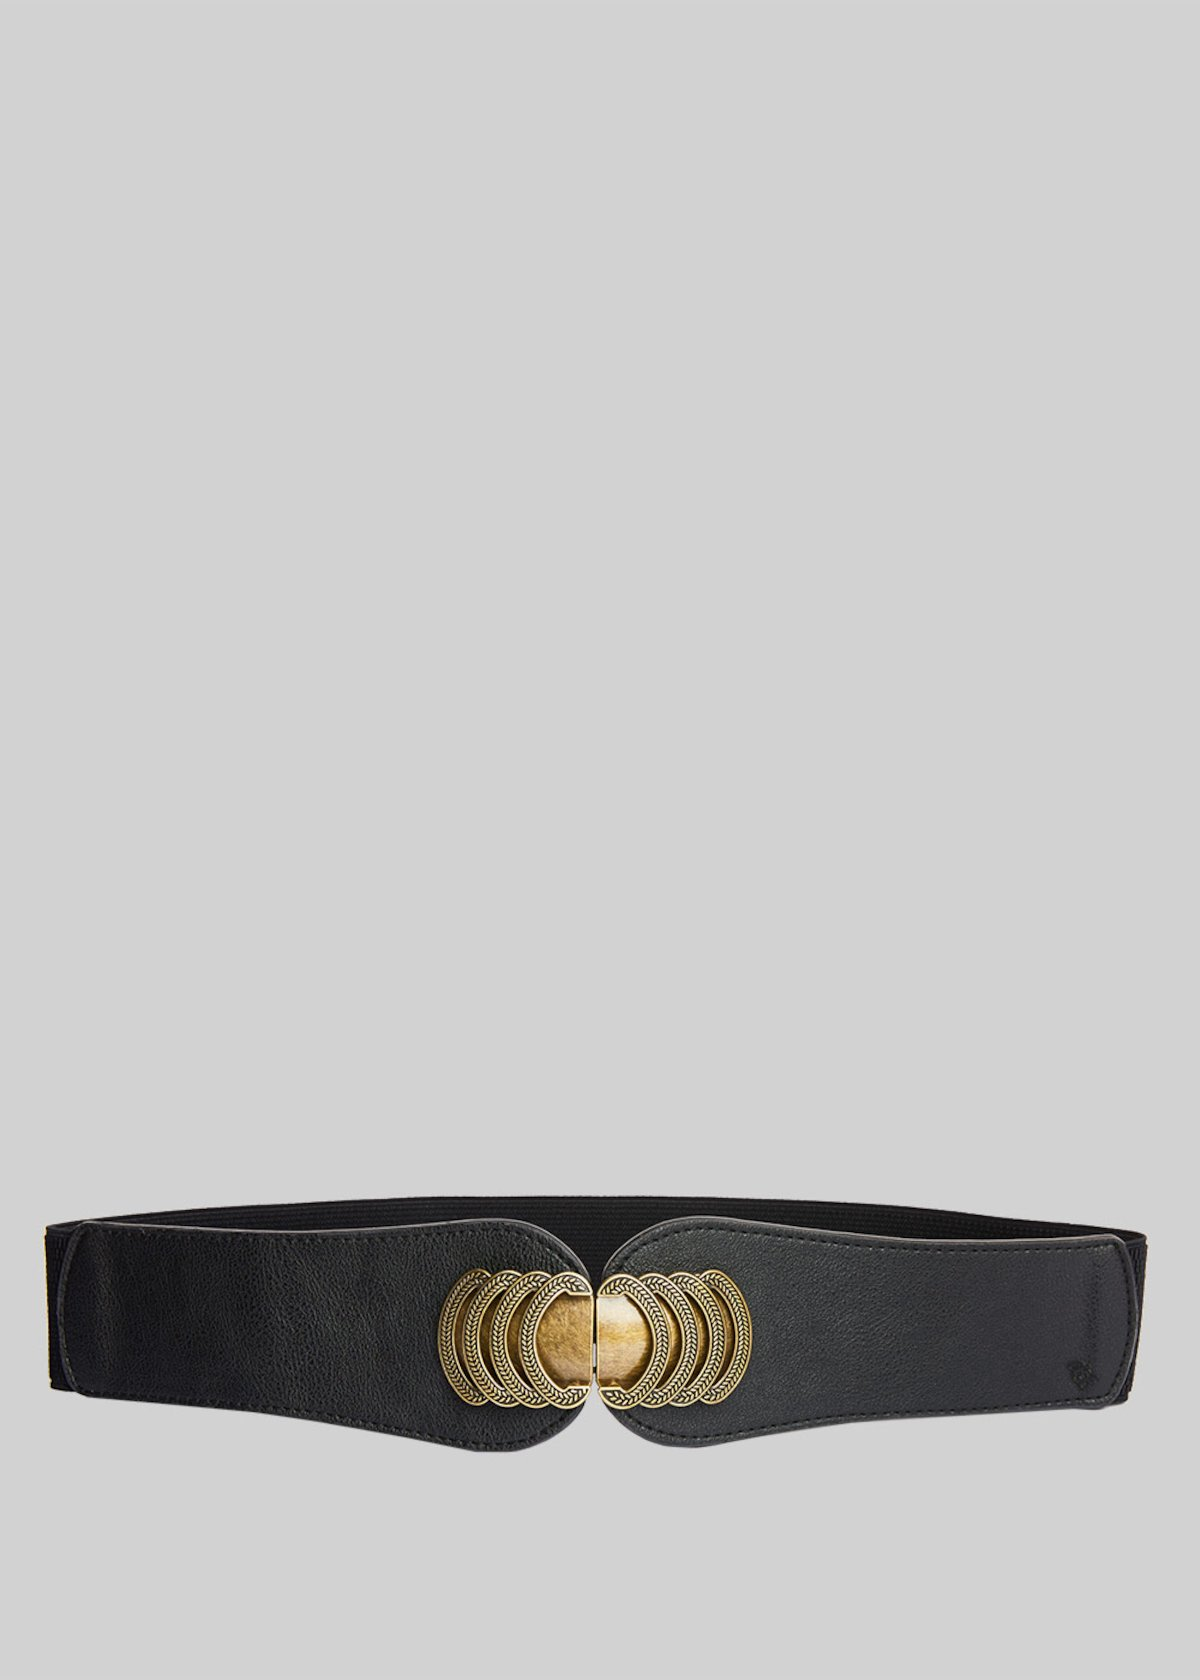 Caepy faux leather belt with antic-gold metal closure - Black